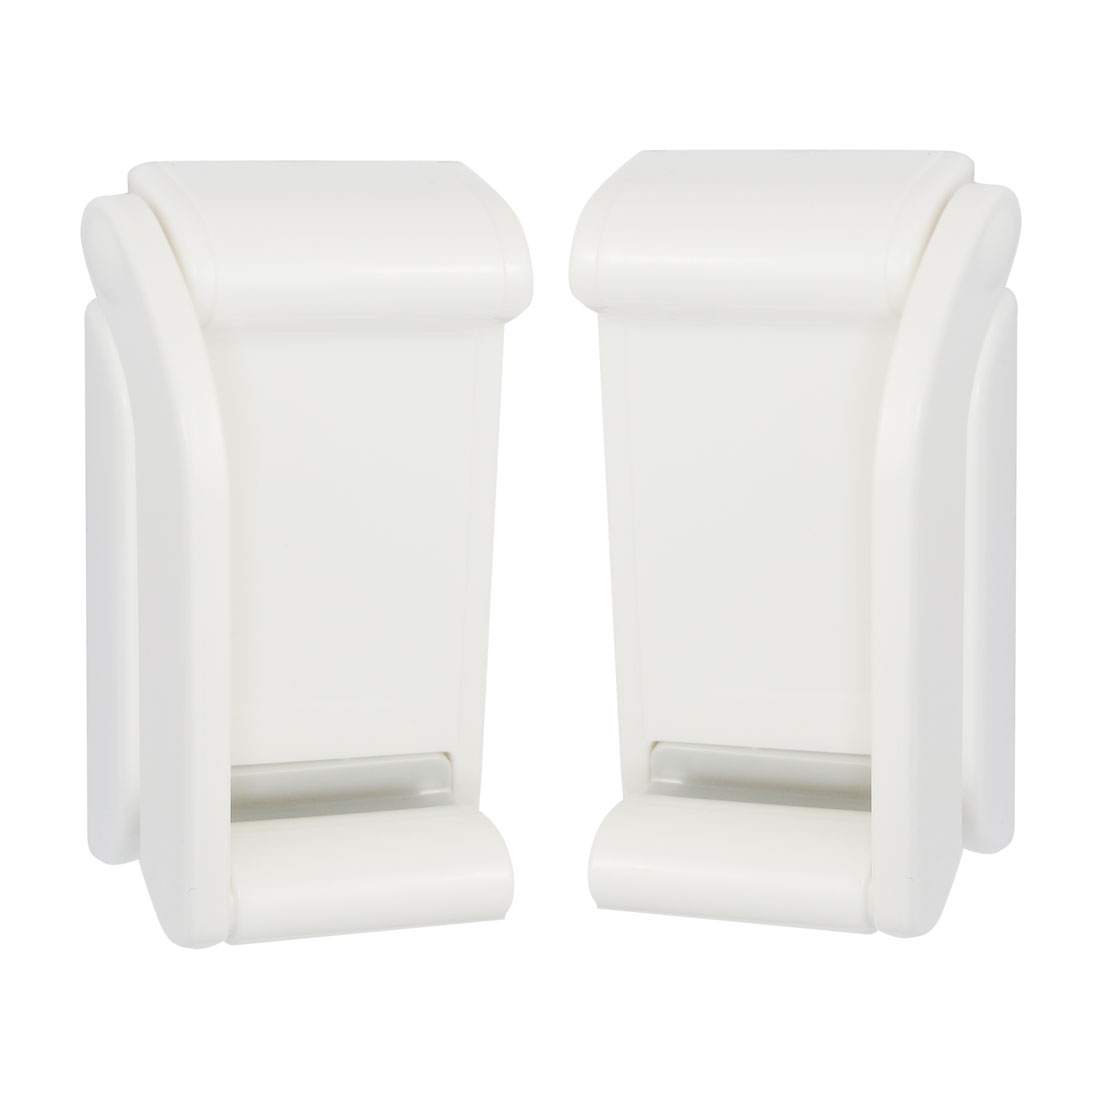 Plastic White Adjustable Magnet Toilet Paper Tissue Holder Bracket